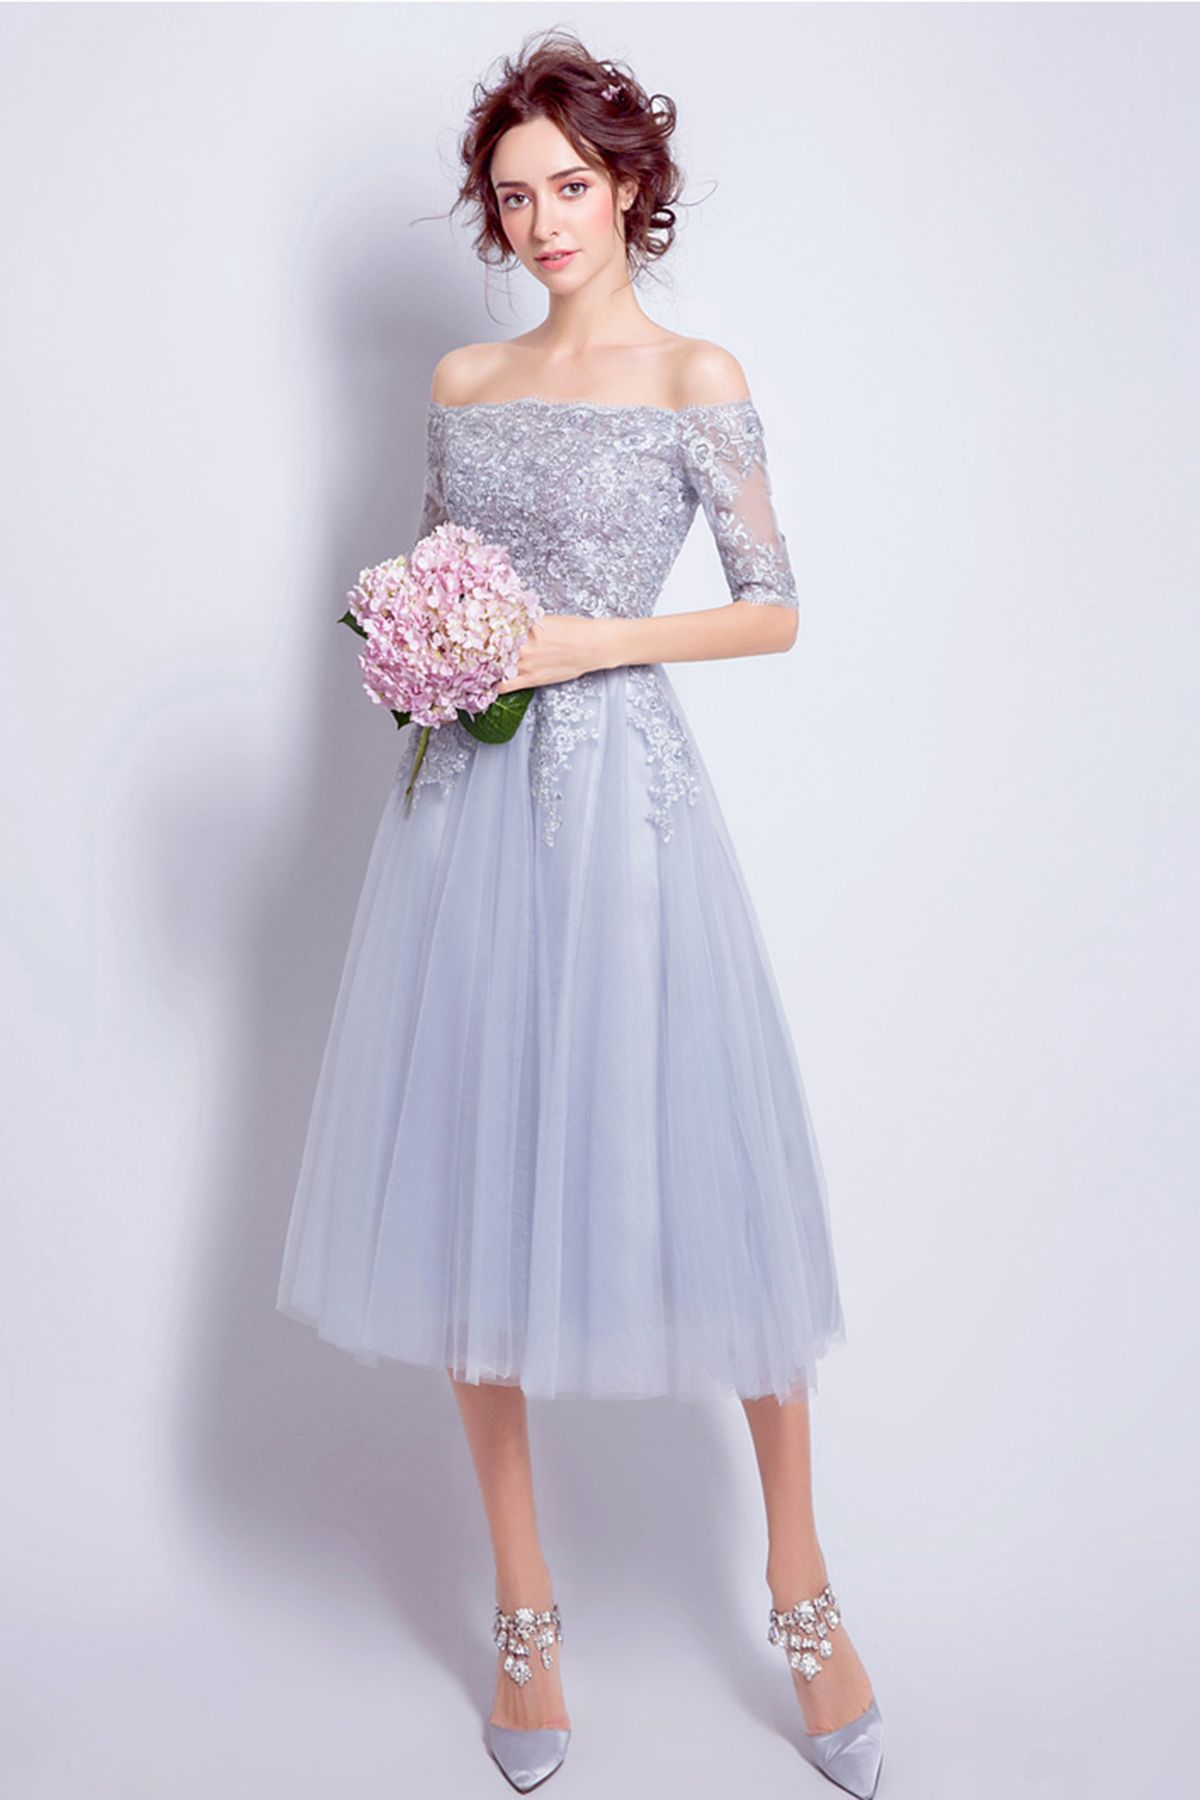 21610232fa10 Beautiful gray tulle off shoulder knee length evening gown #wedding #prom  #promdress #prom2018 #weddingdresses